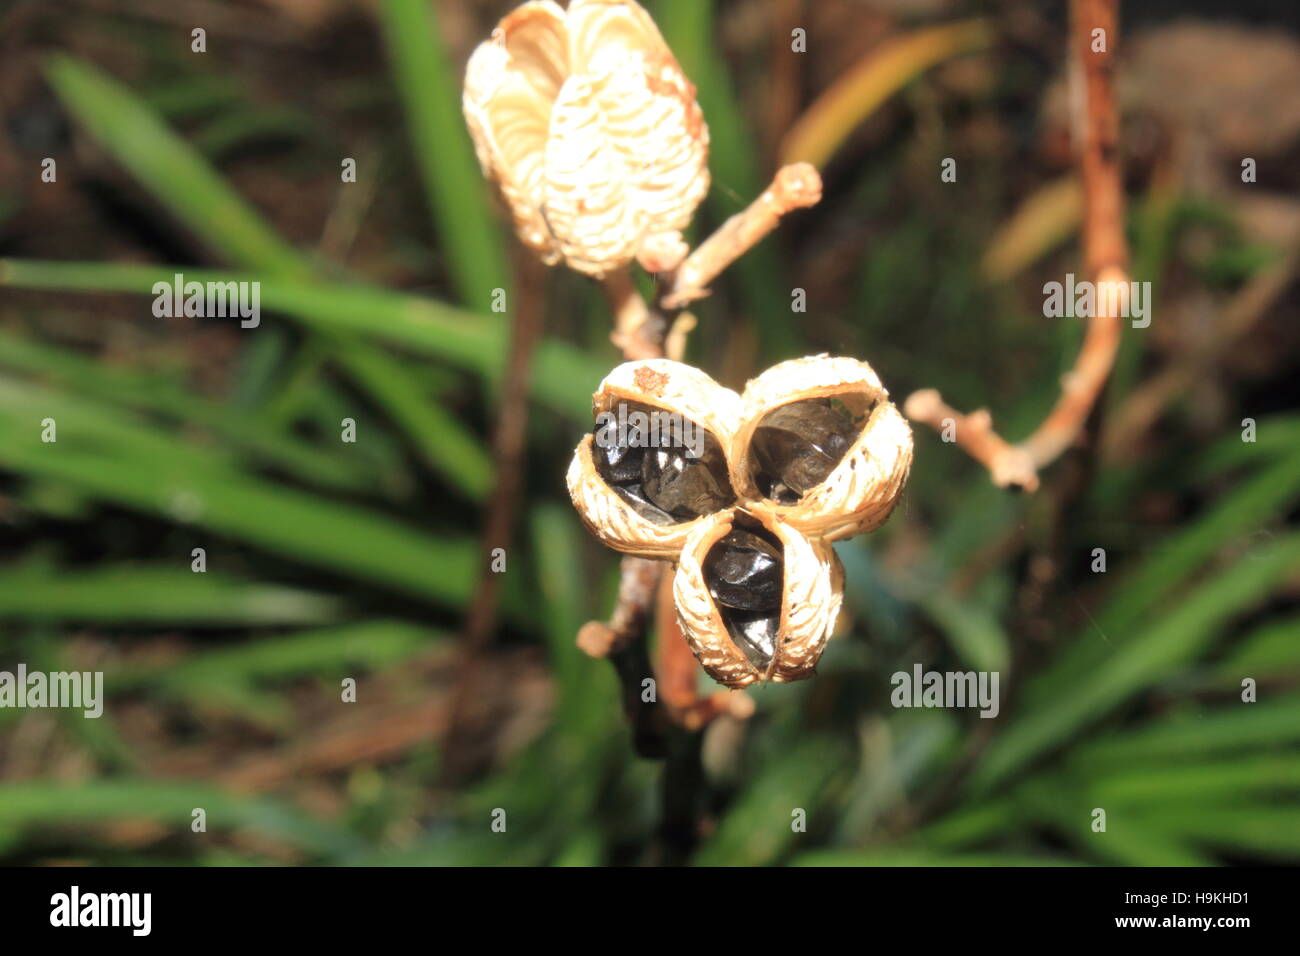 lily seeds stock photos lily seeds stock images alamy